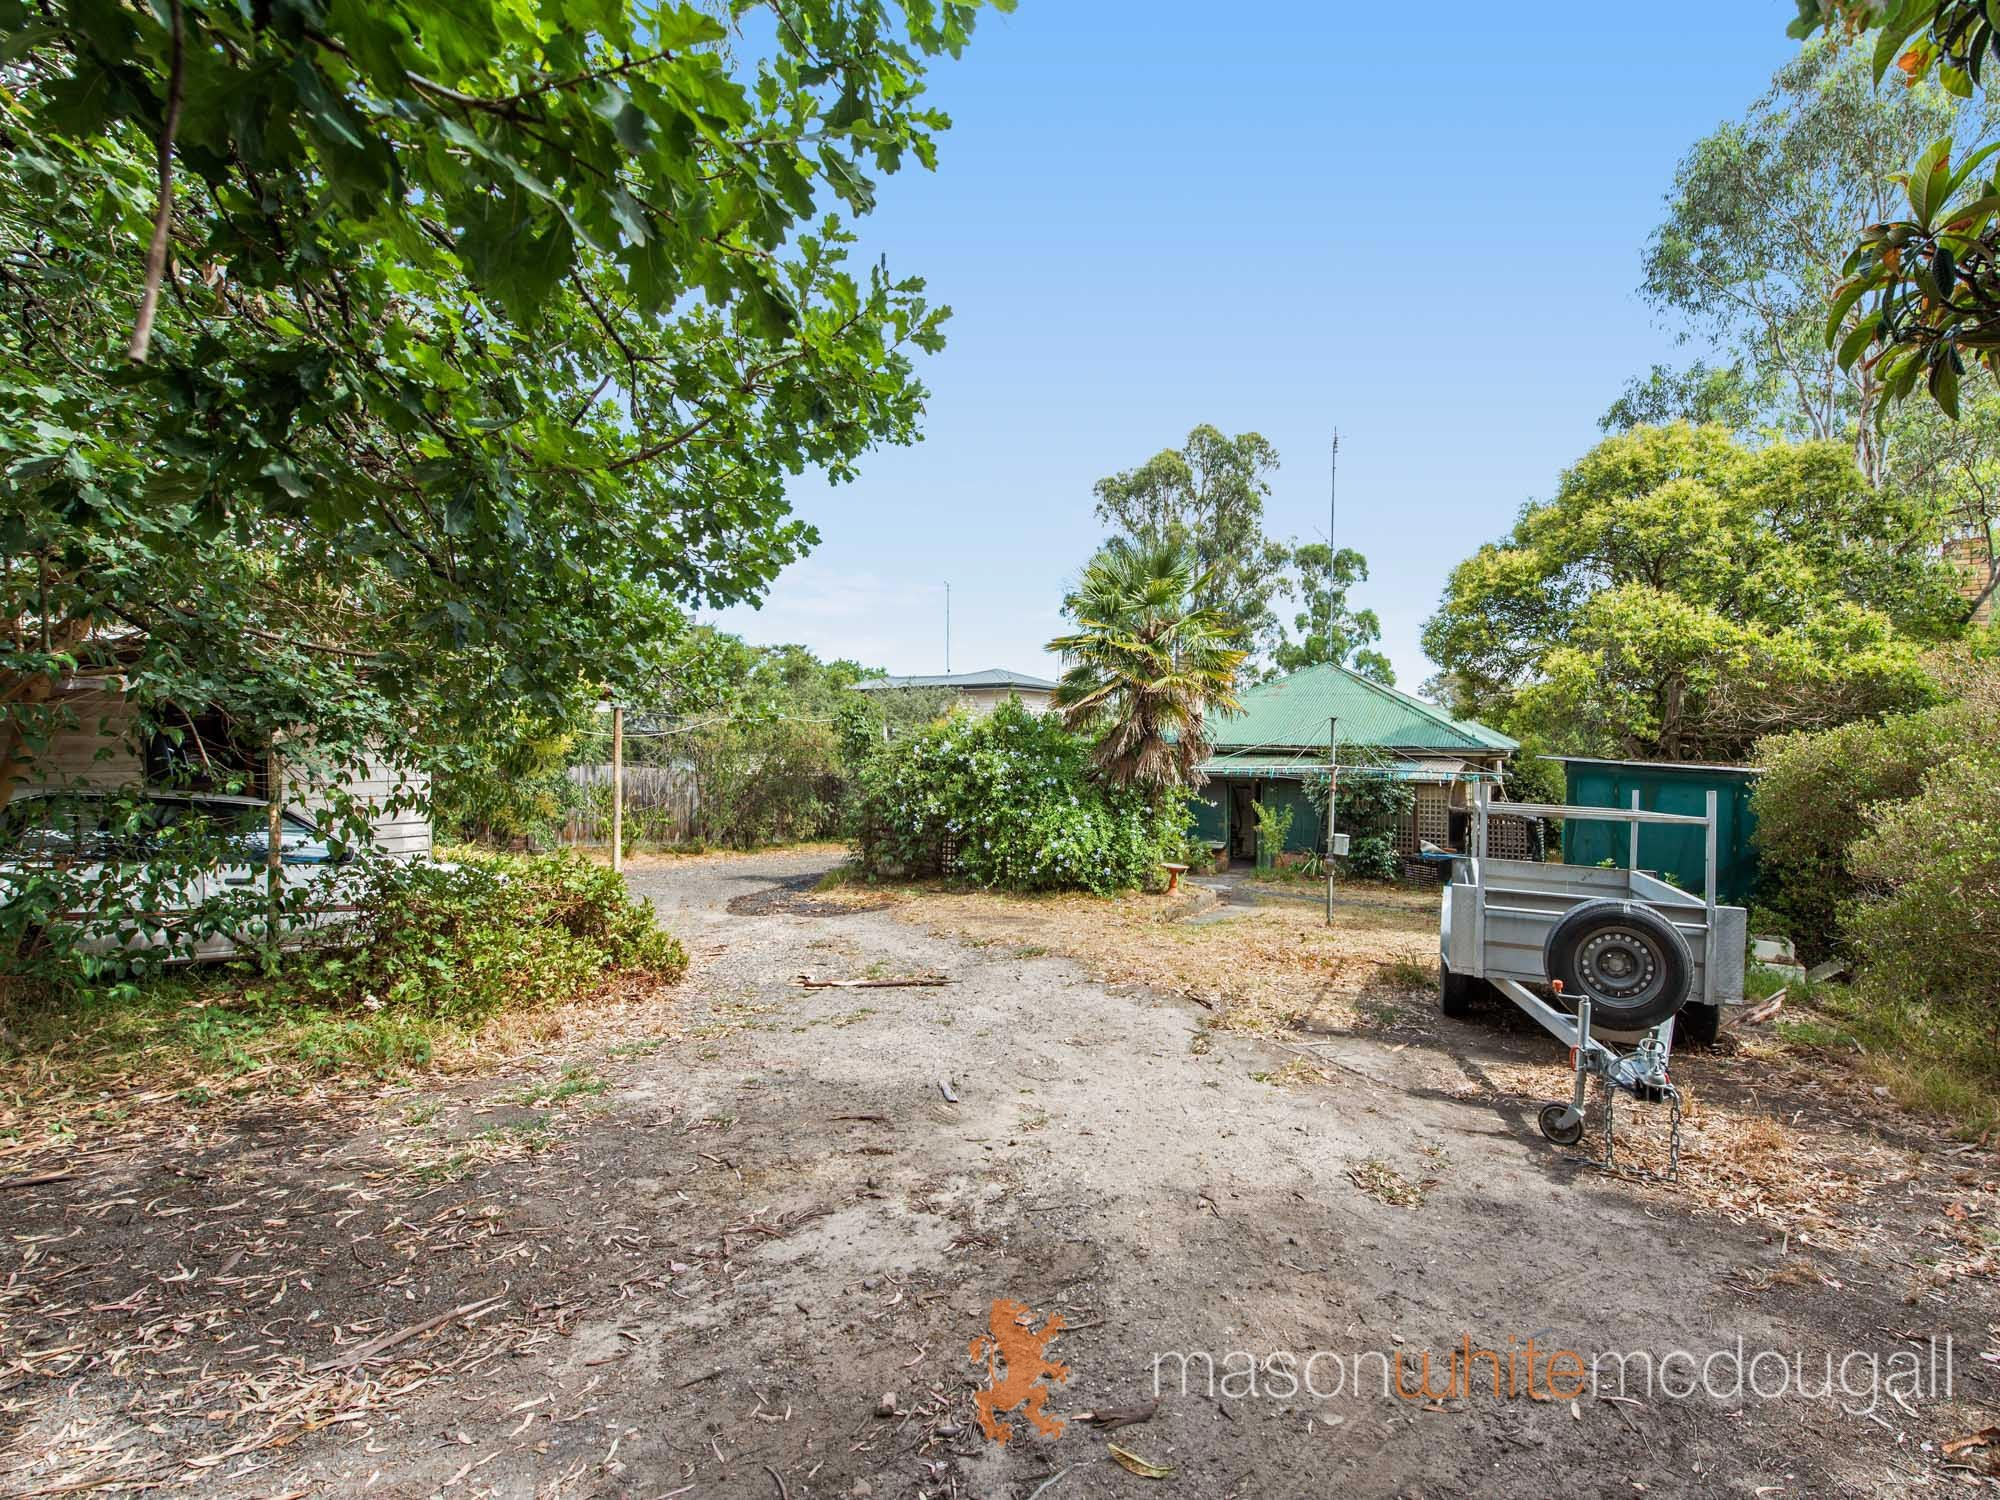 954 Heidelberg - Kinglake Road HURSTBRIDGE